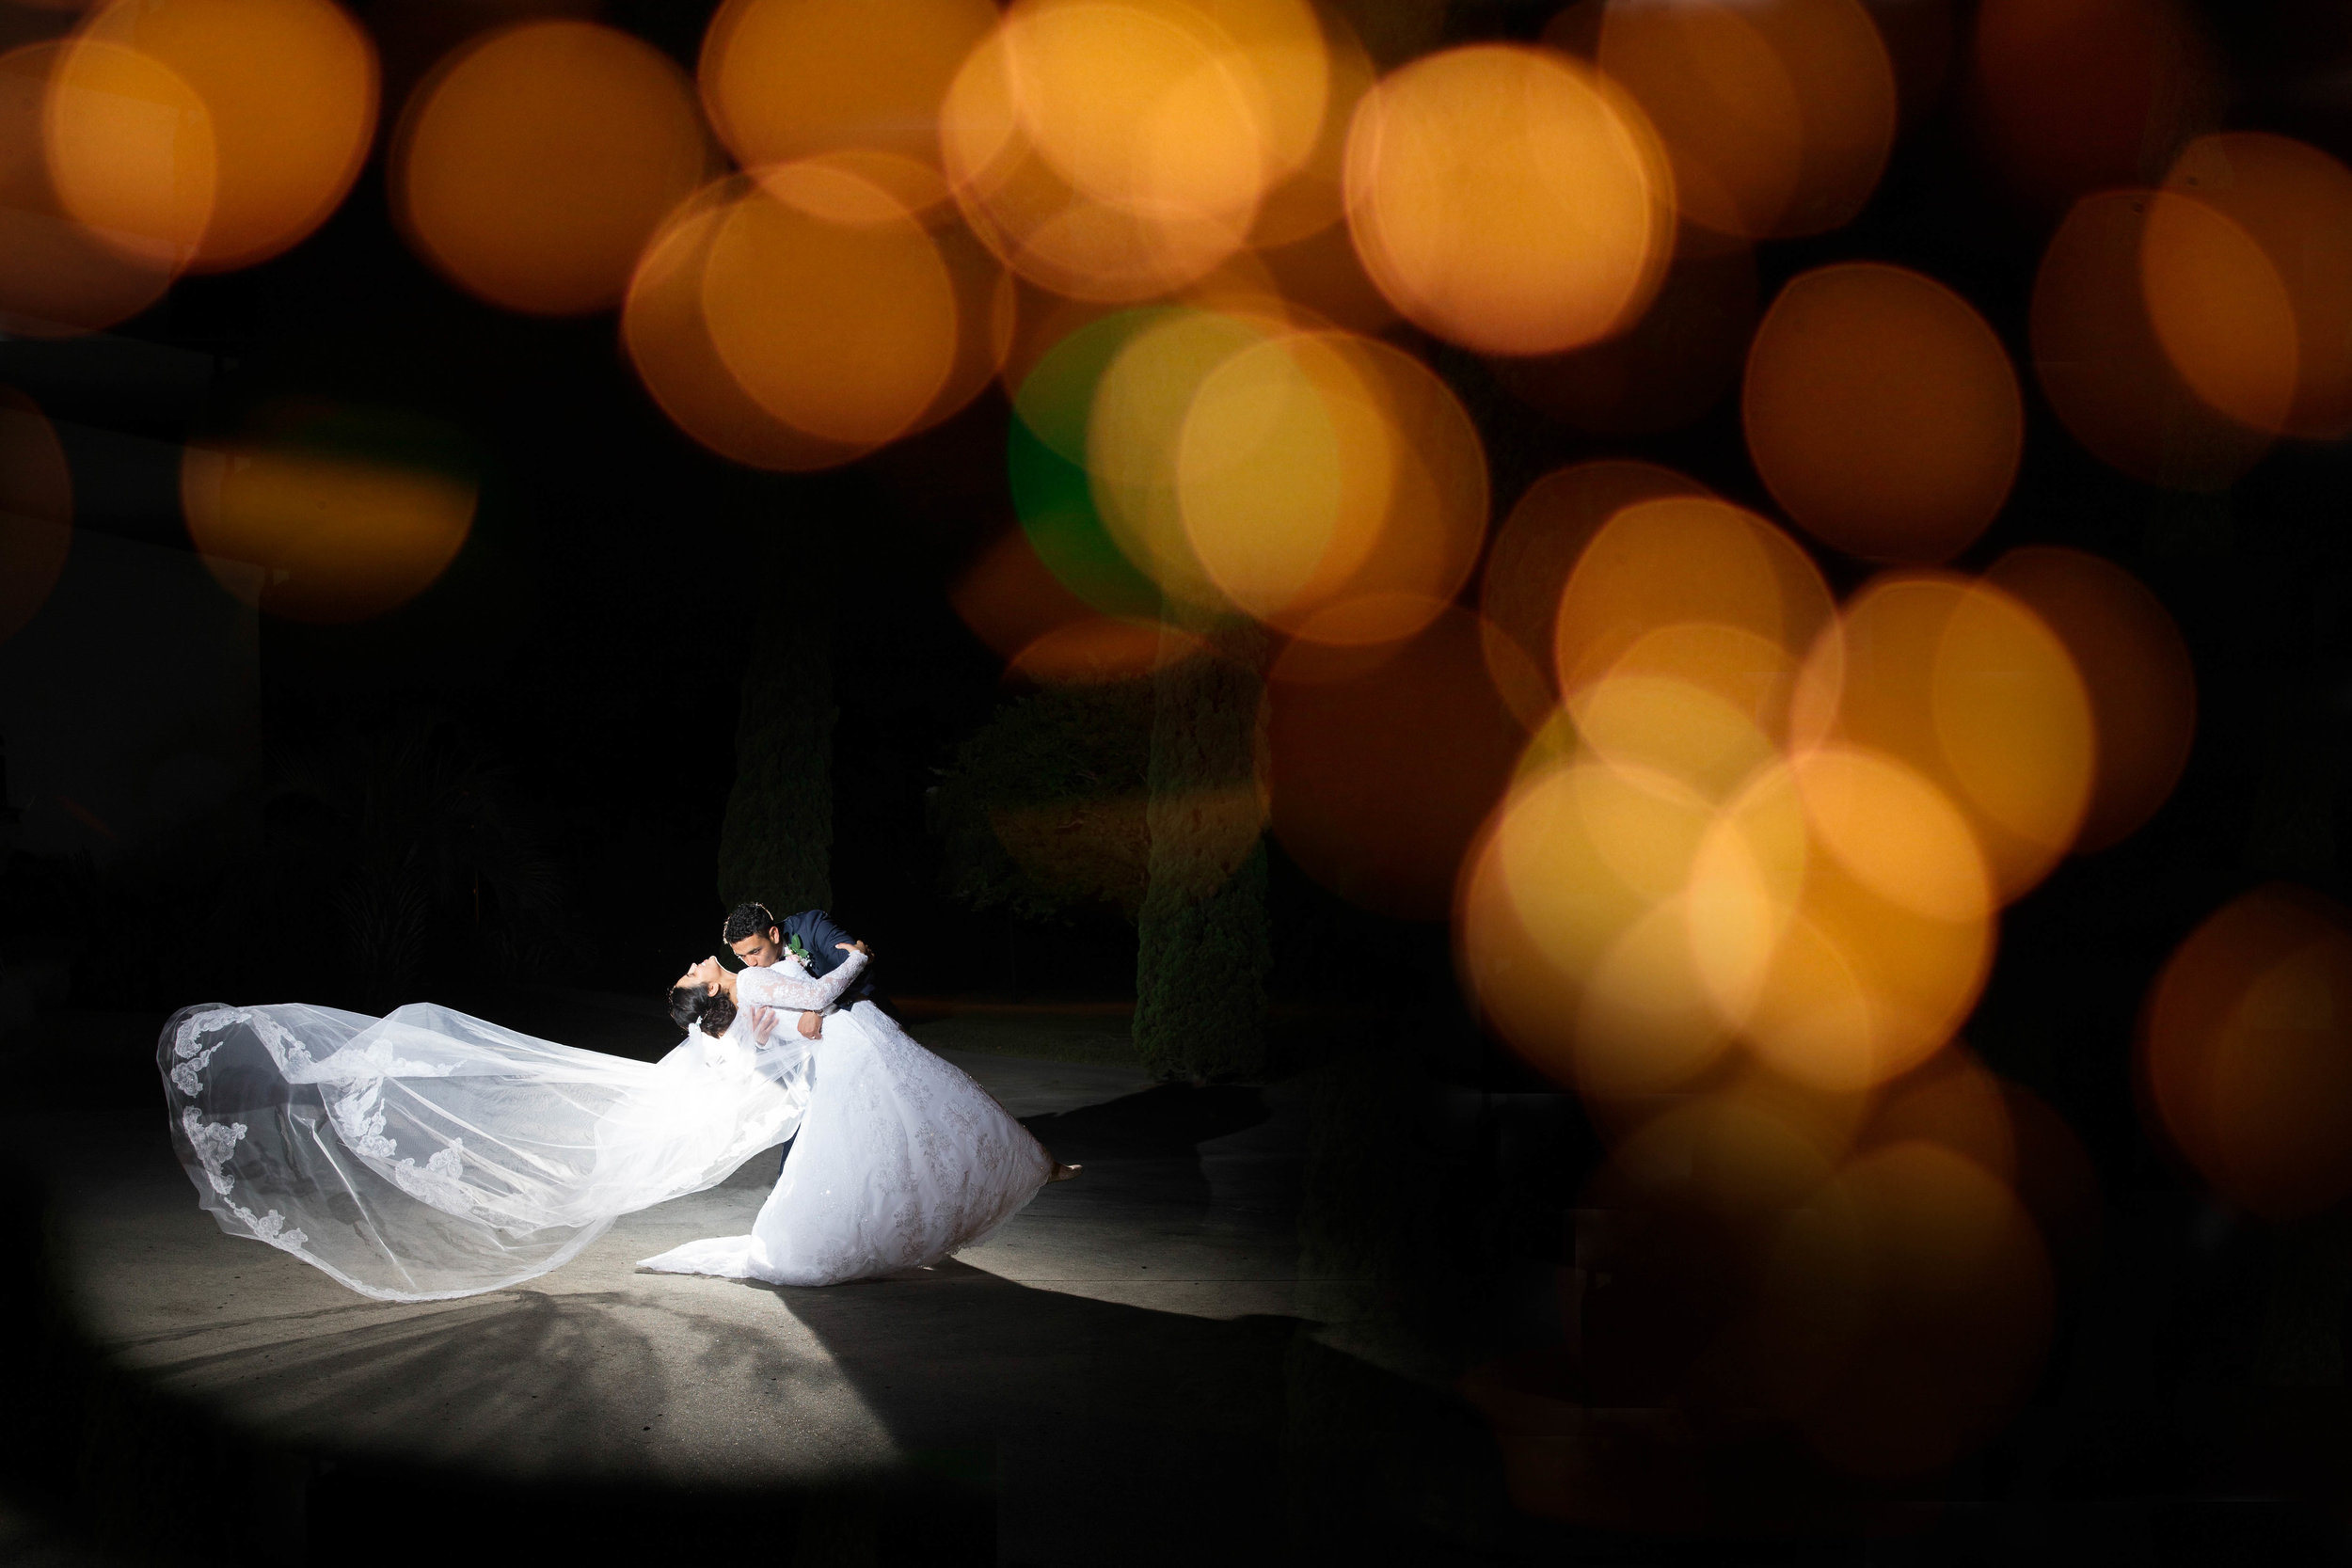 Stylish and dramatic shot of newlywed couple dancing together